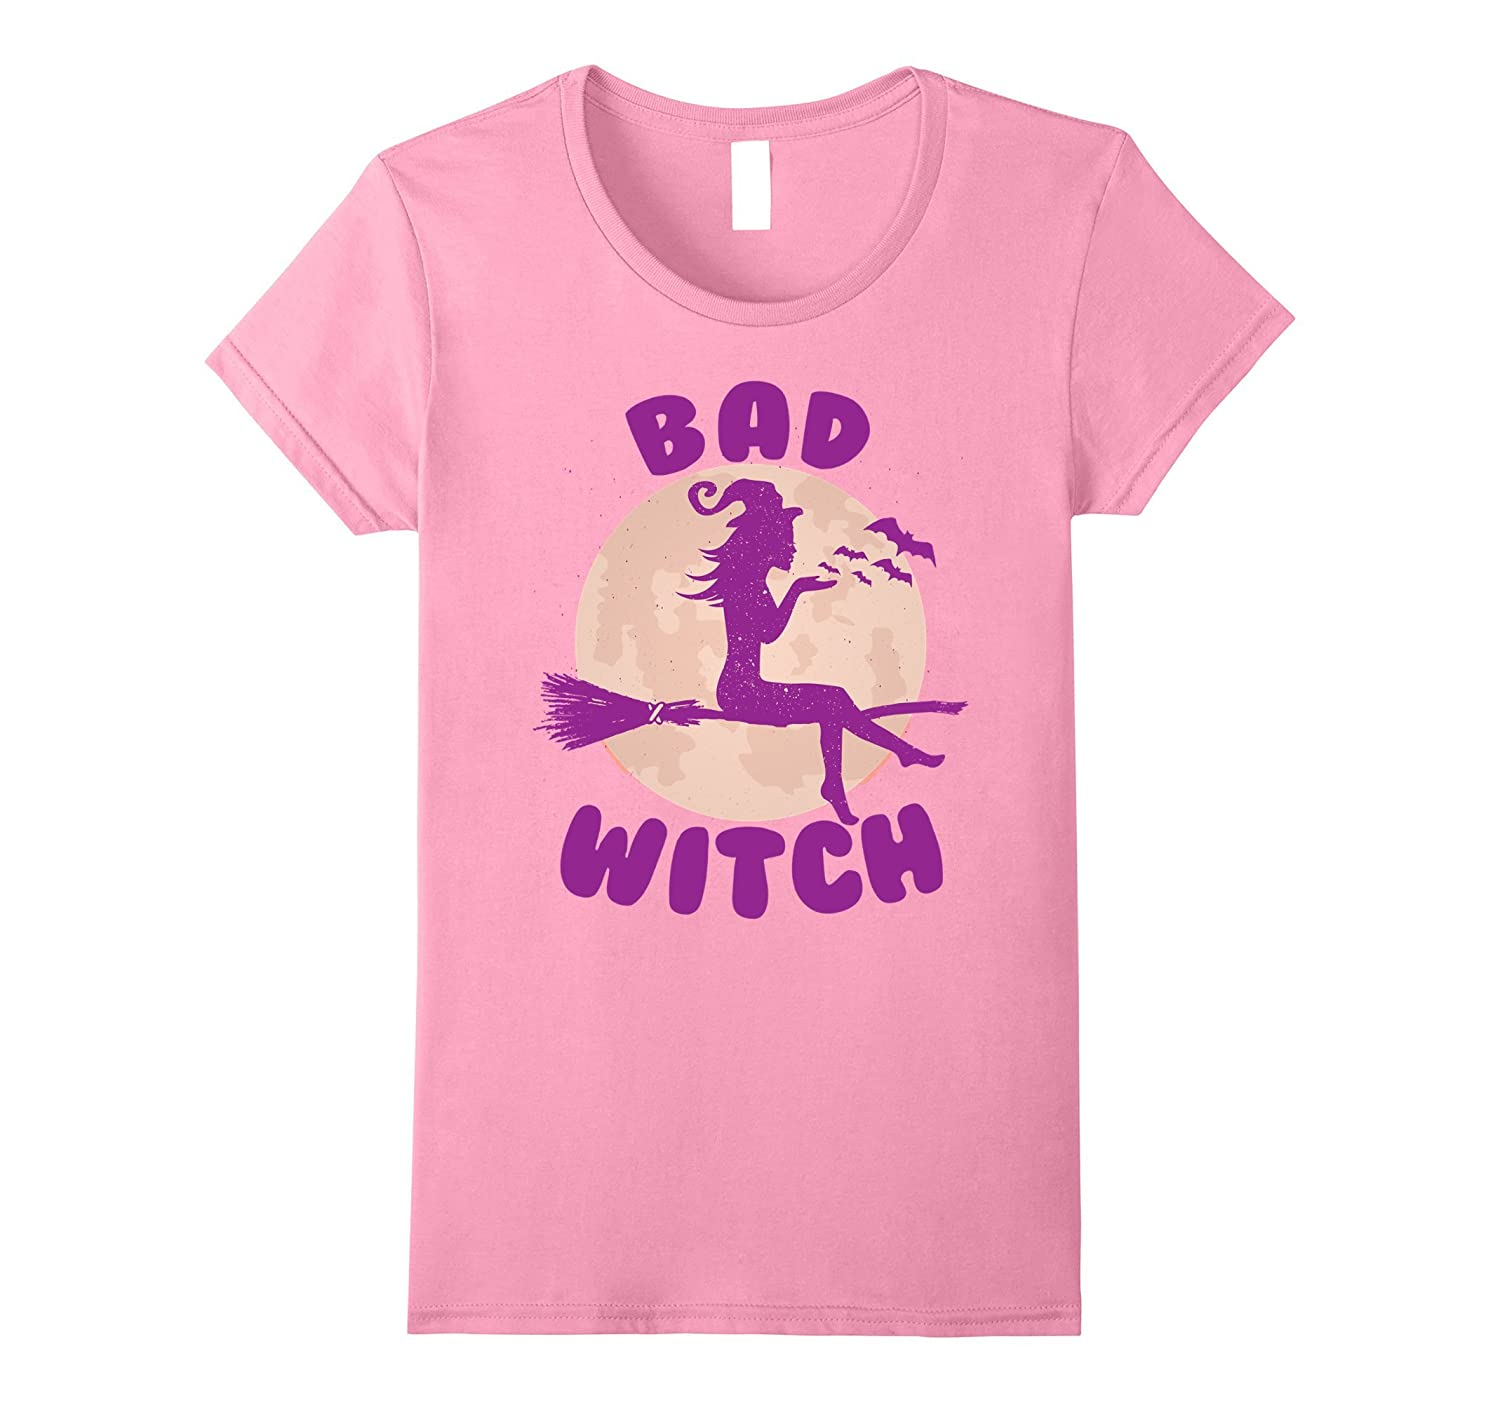 Bad Witch - Funny Spooky Halloween T-Shirt-FL